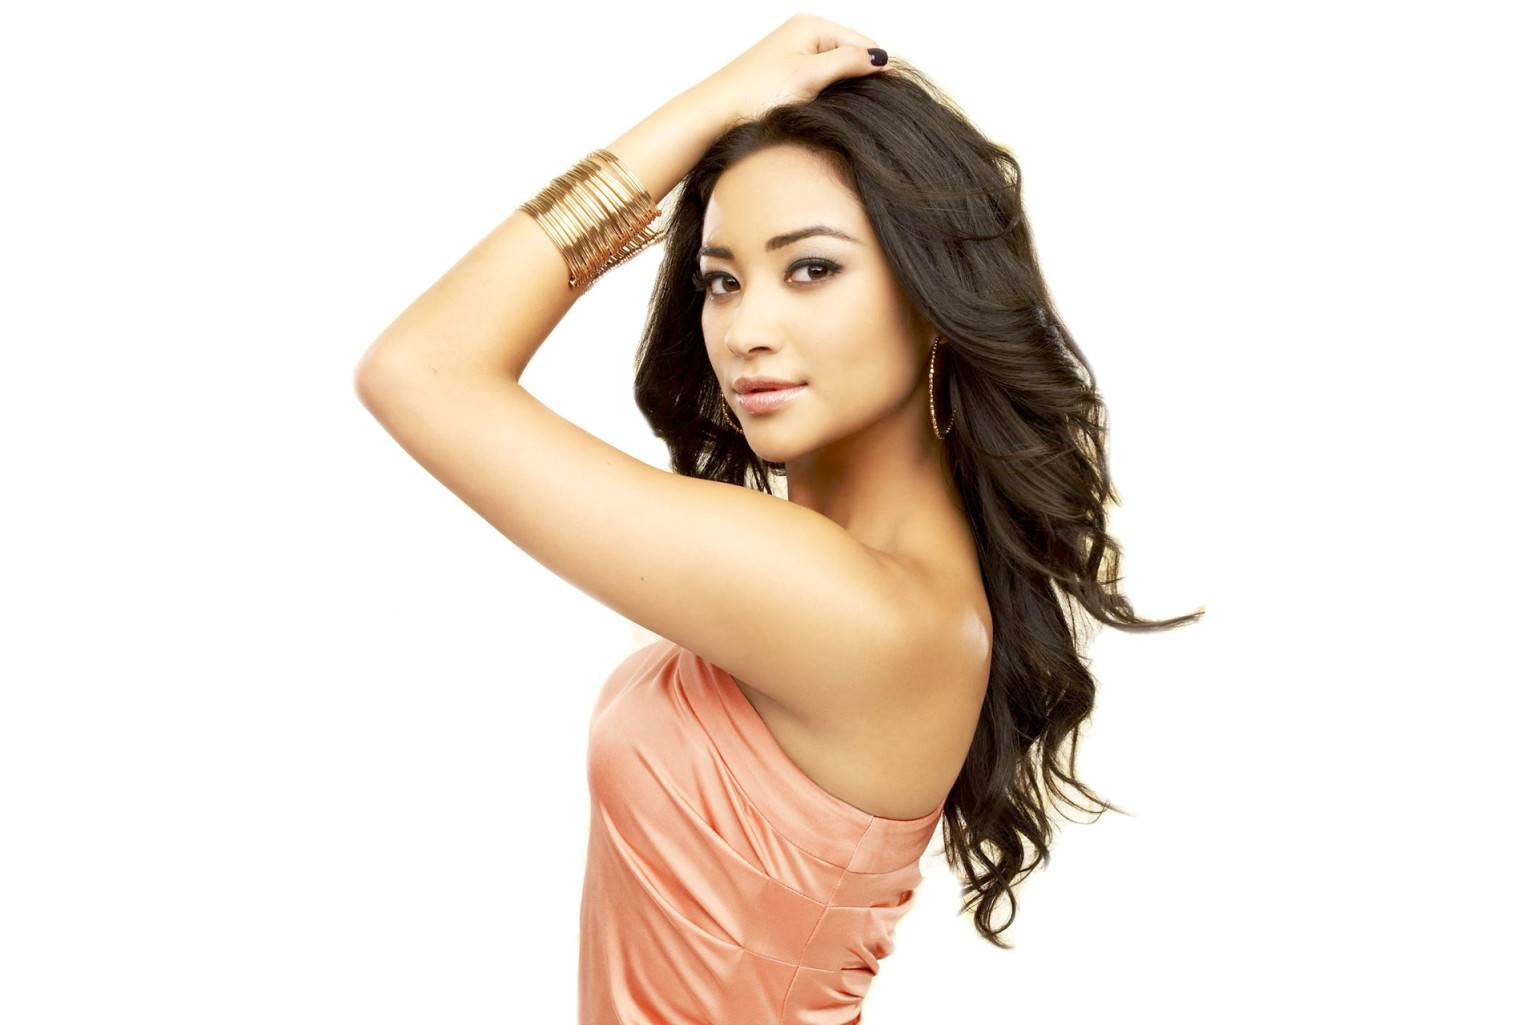 Can consult pretty little liars shay mitchell nude are